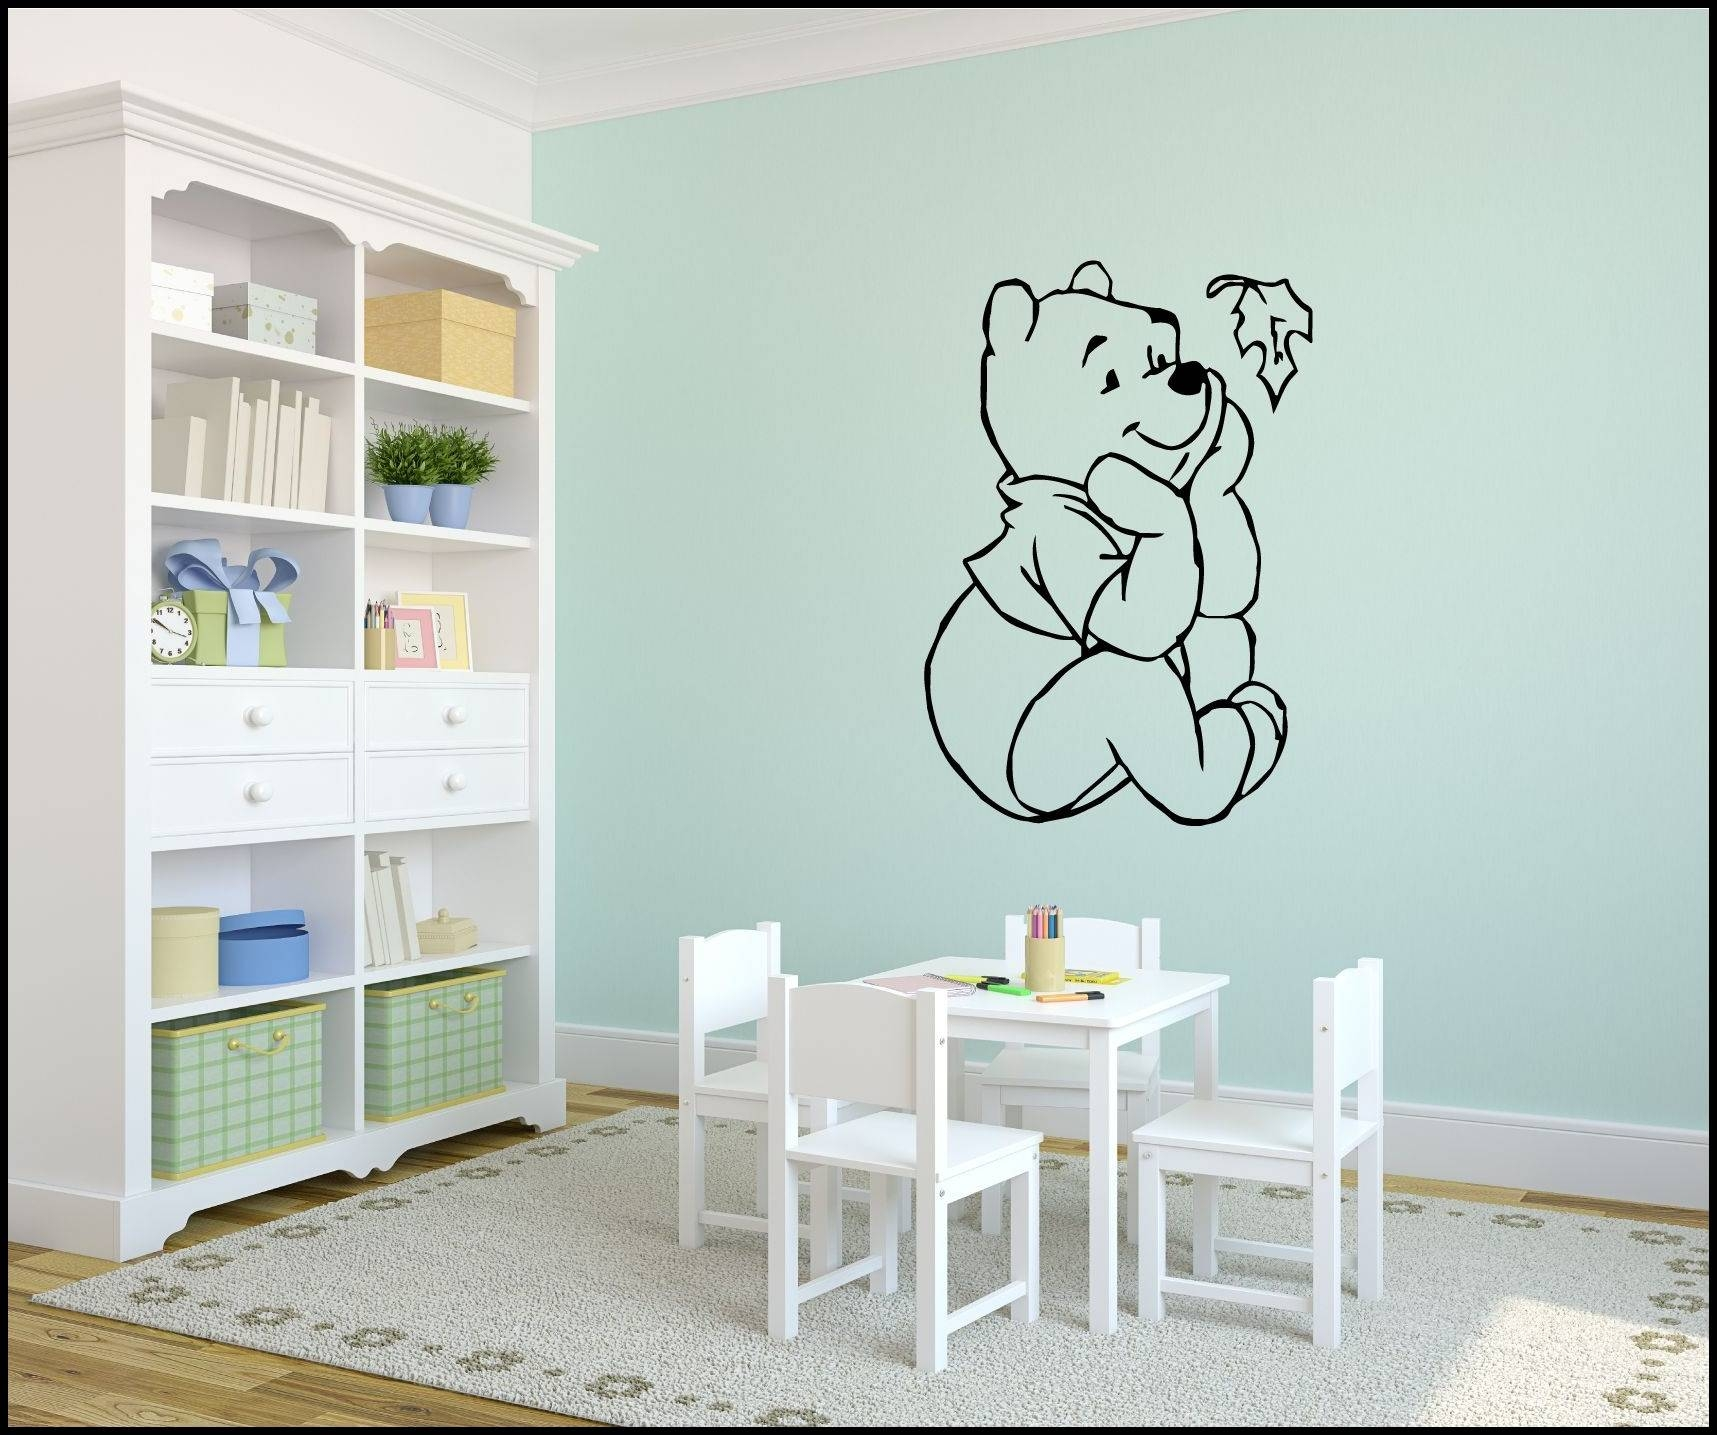 Best Winnie The Pooh Wall Decals Ideas : Winnie The Pooh Wall Regarding Current Winnie The Pooh Wall Decor (View 2 of 20)